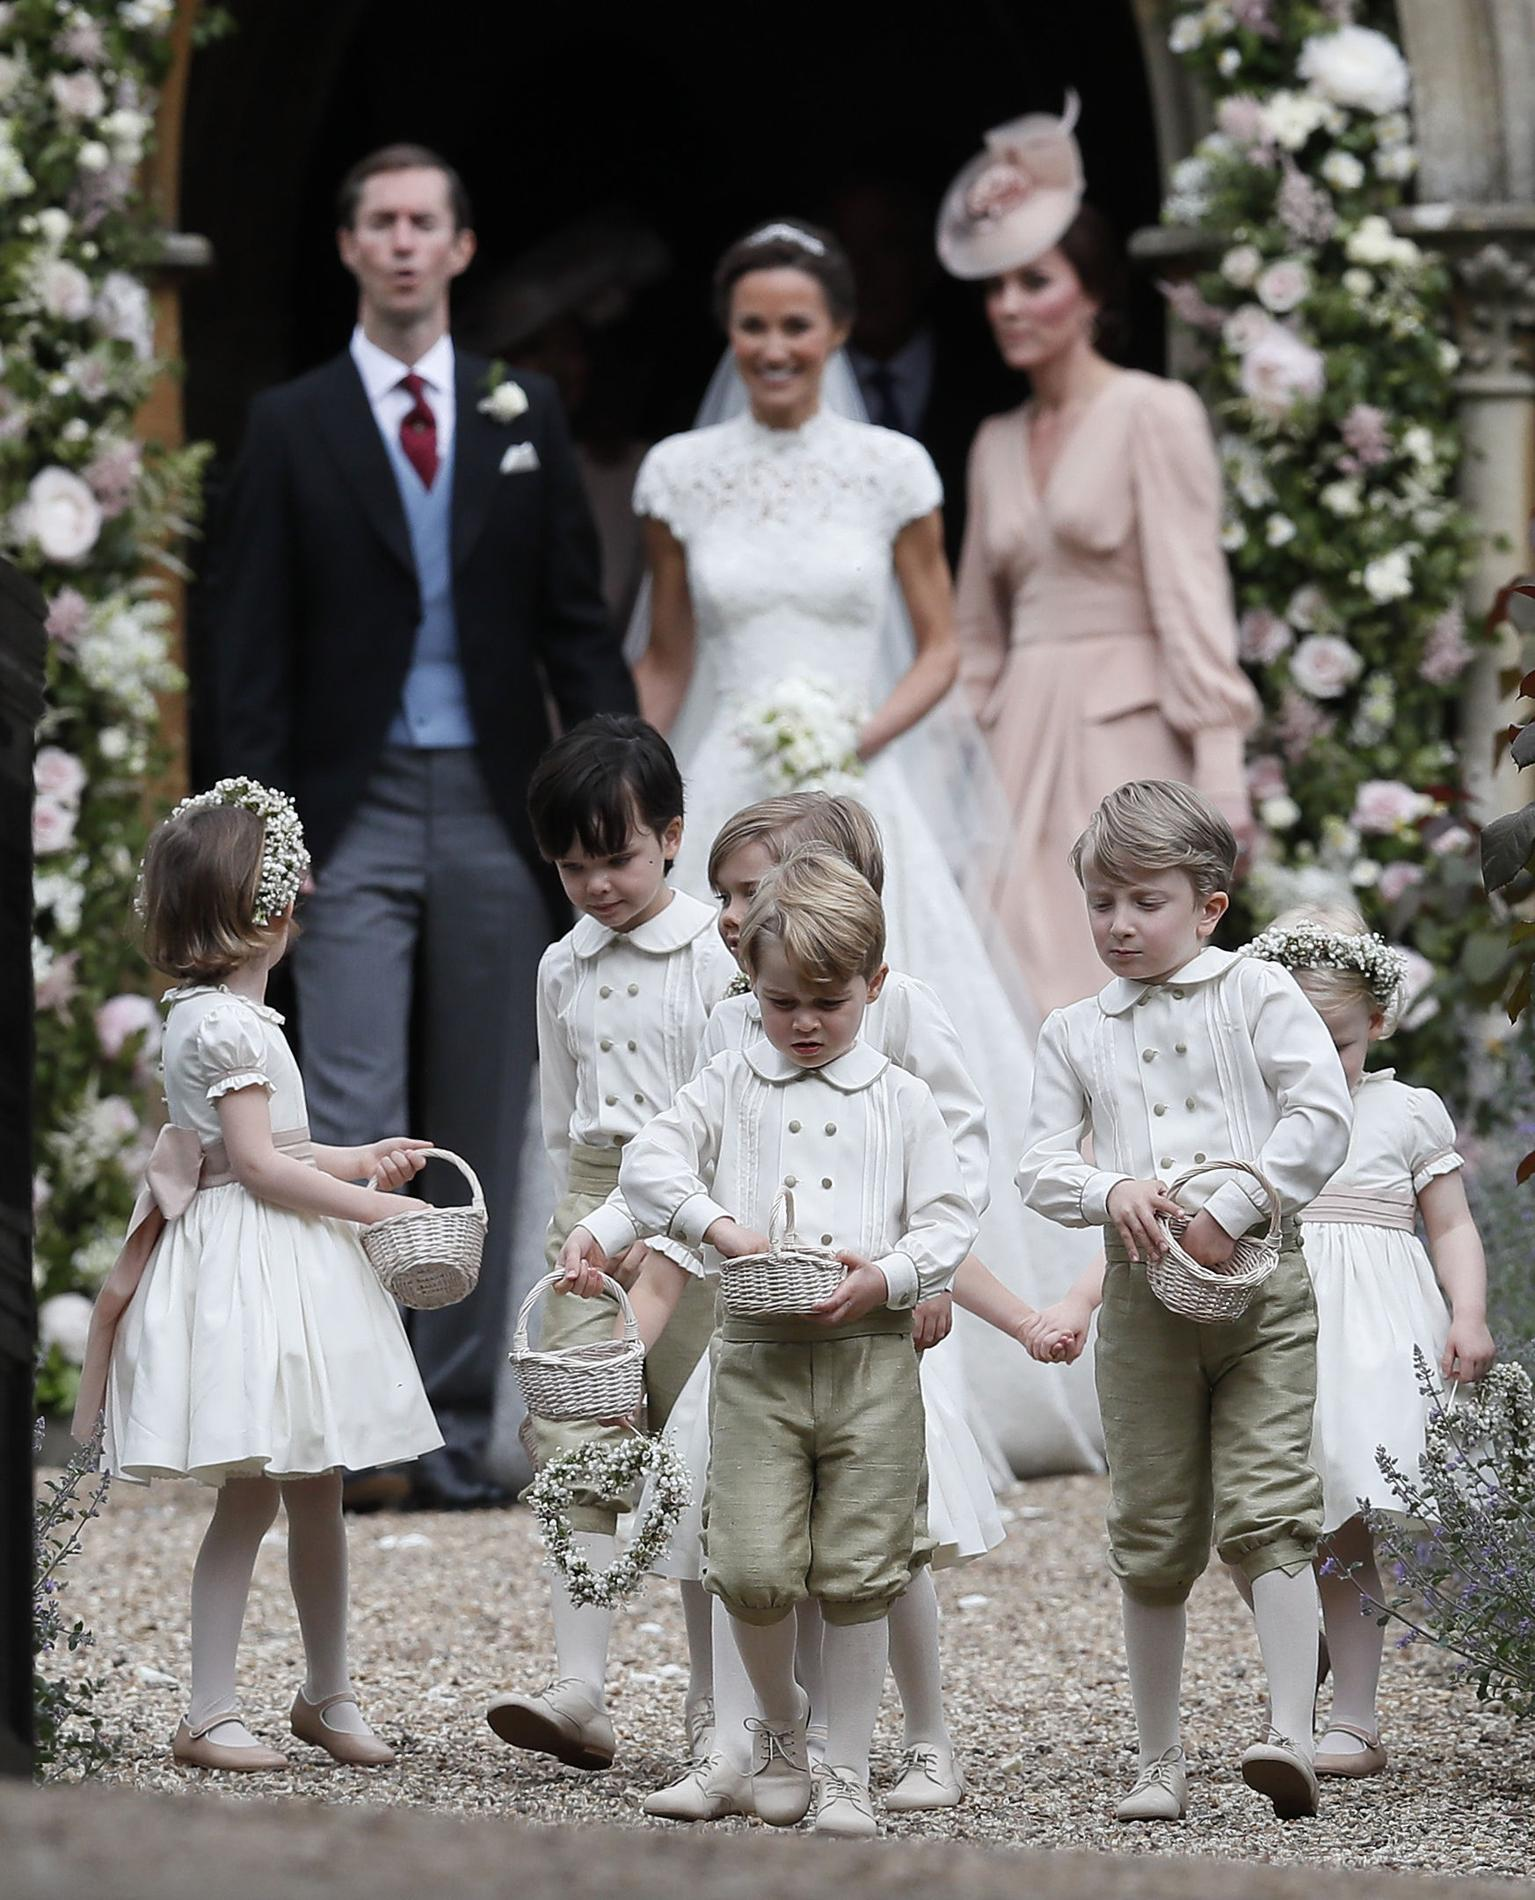 pippa middleton toutes les photos de son mariage avec james matthews madame figaro. Black Bedroom Furniture Sets. Home Design Ideas